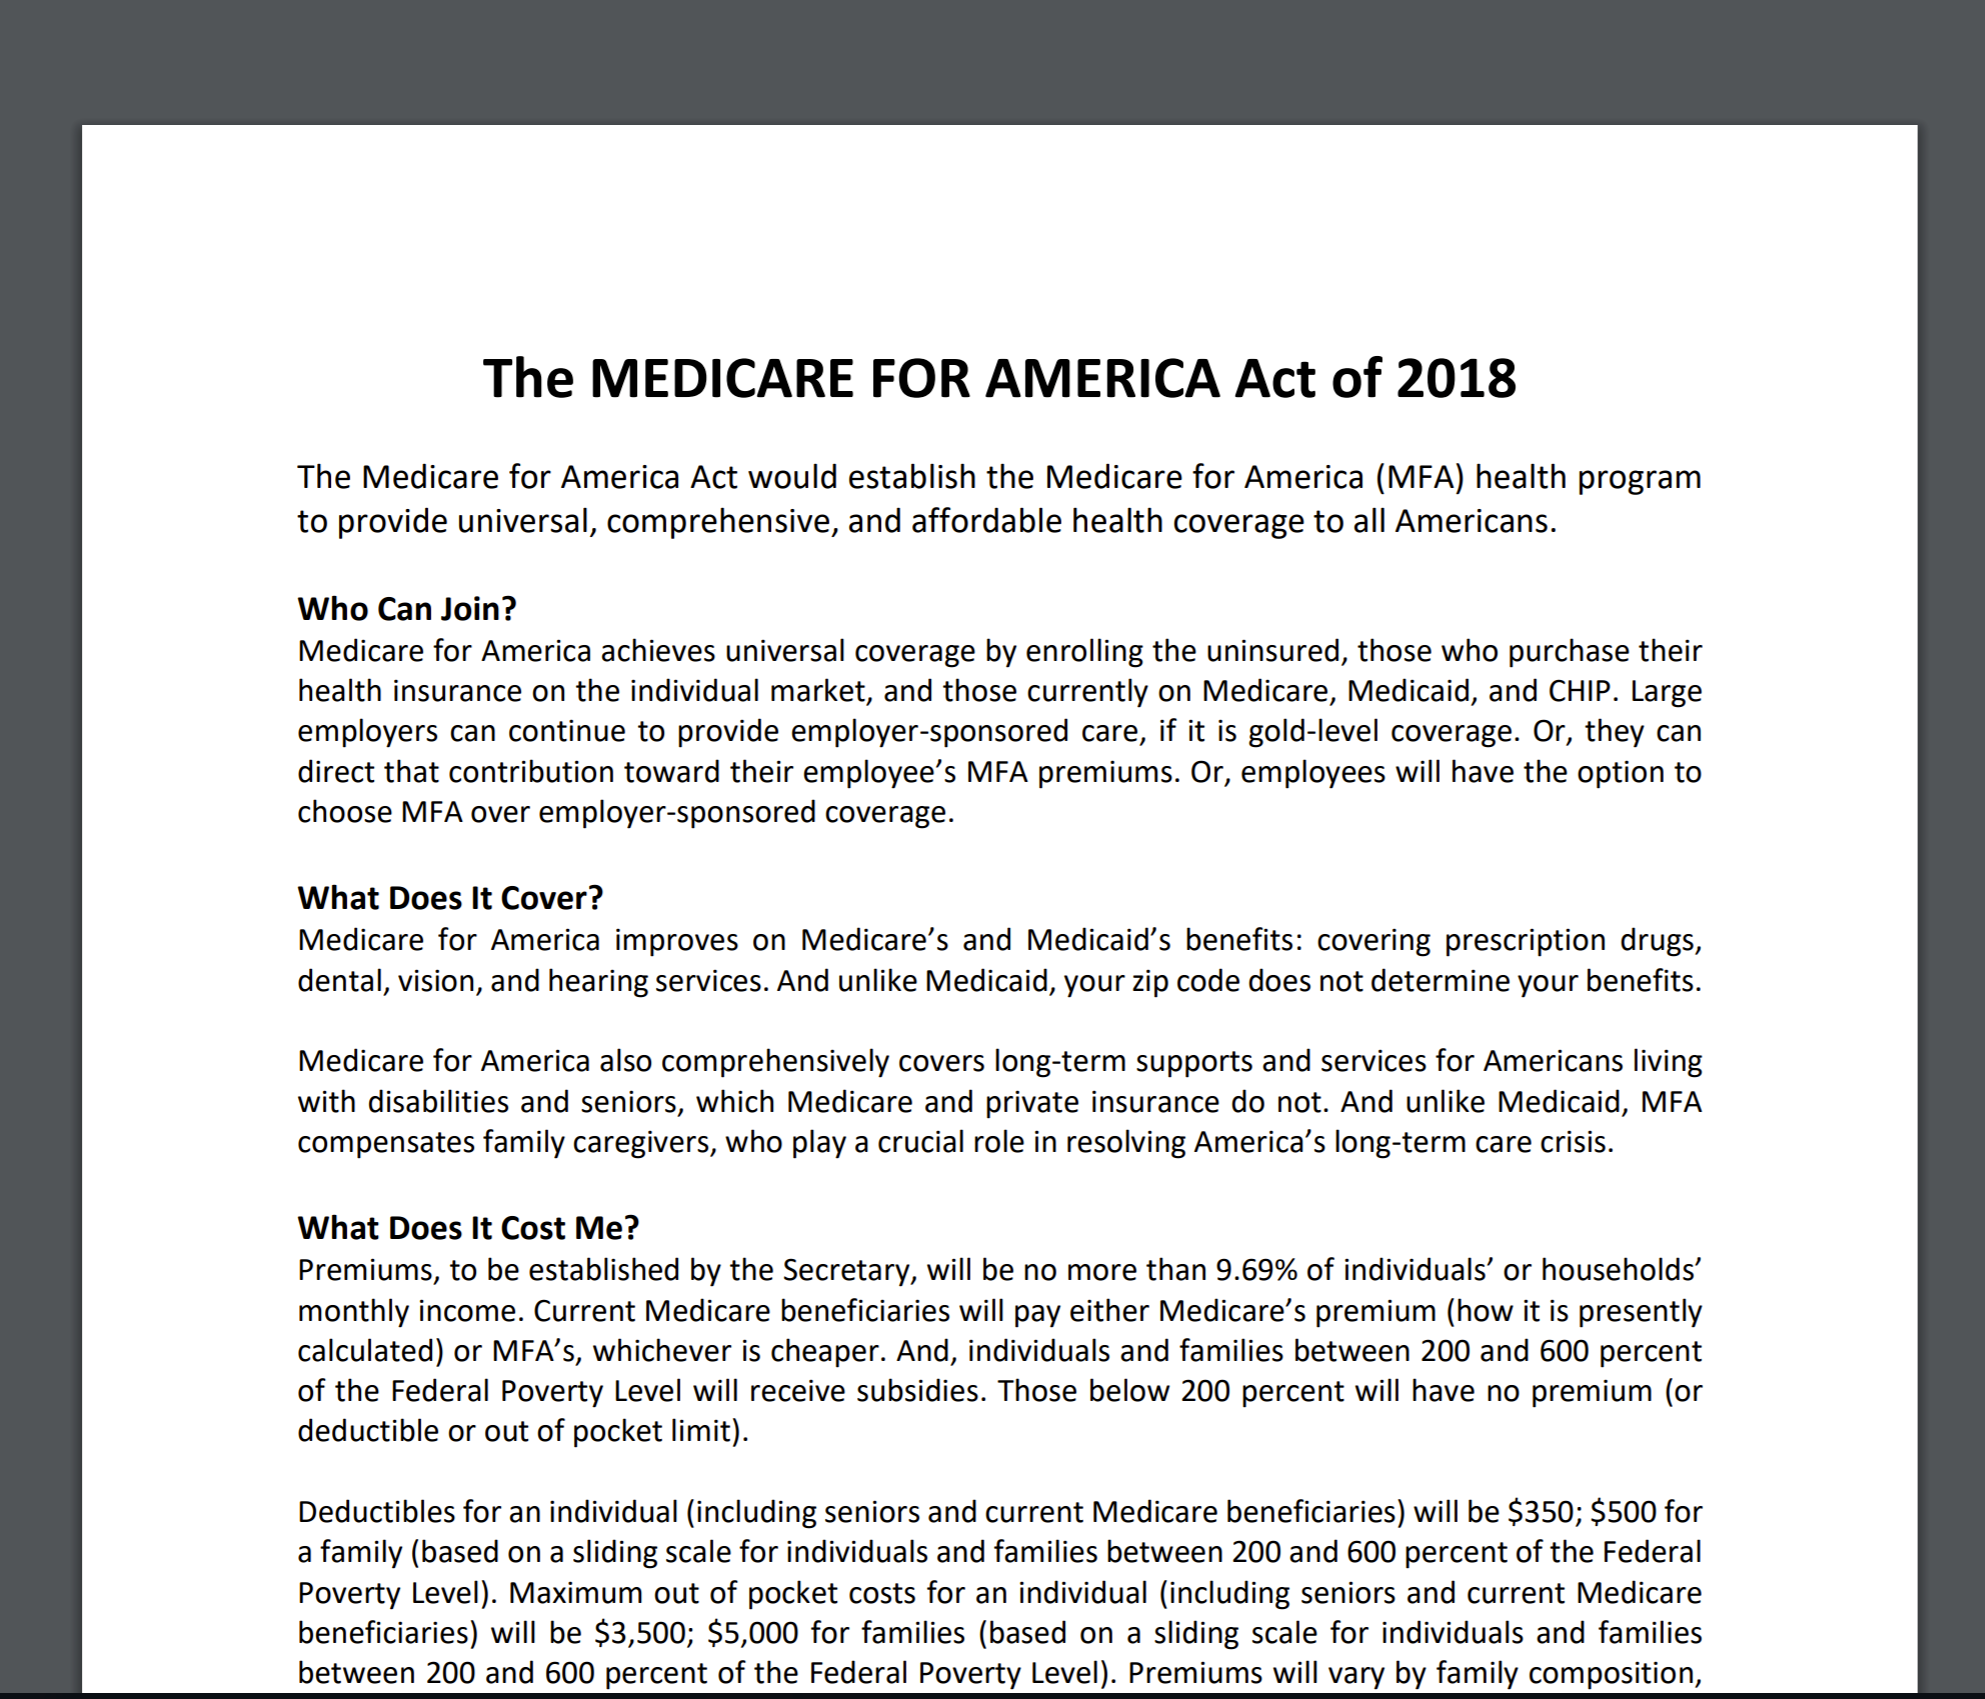 The Medicare for America Act is a counter proposal to